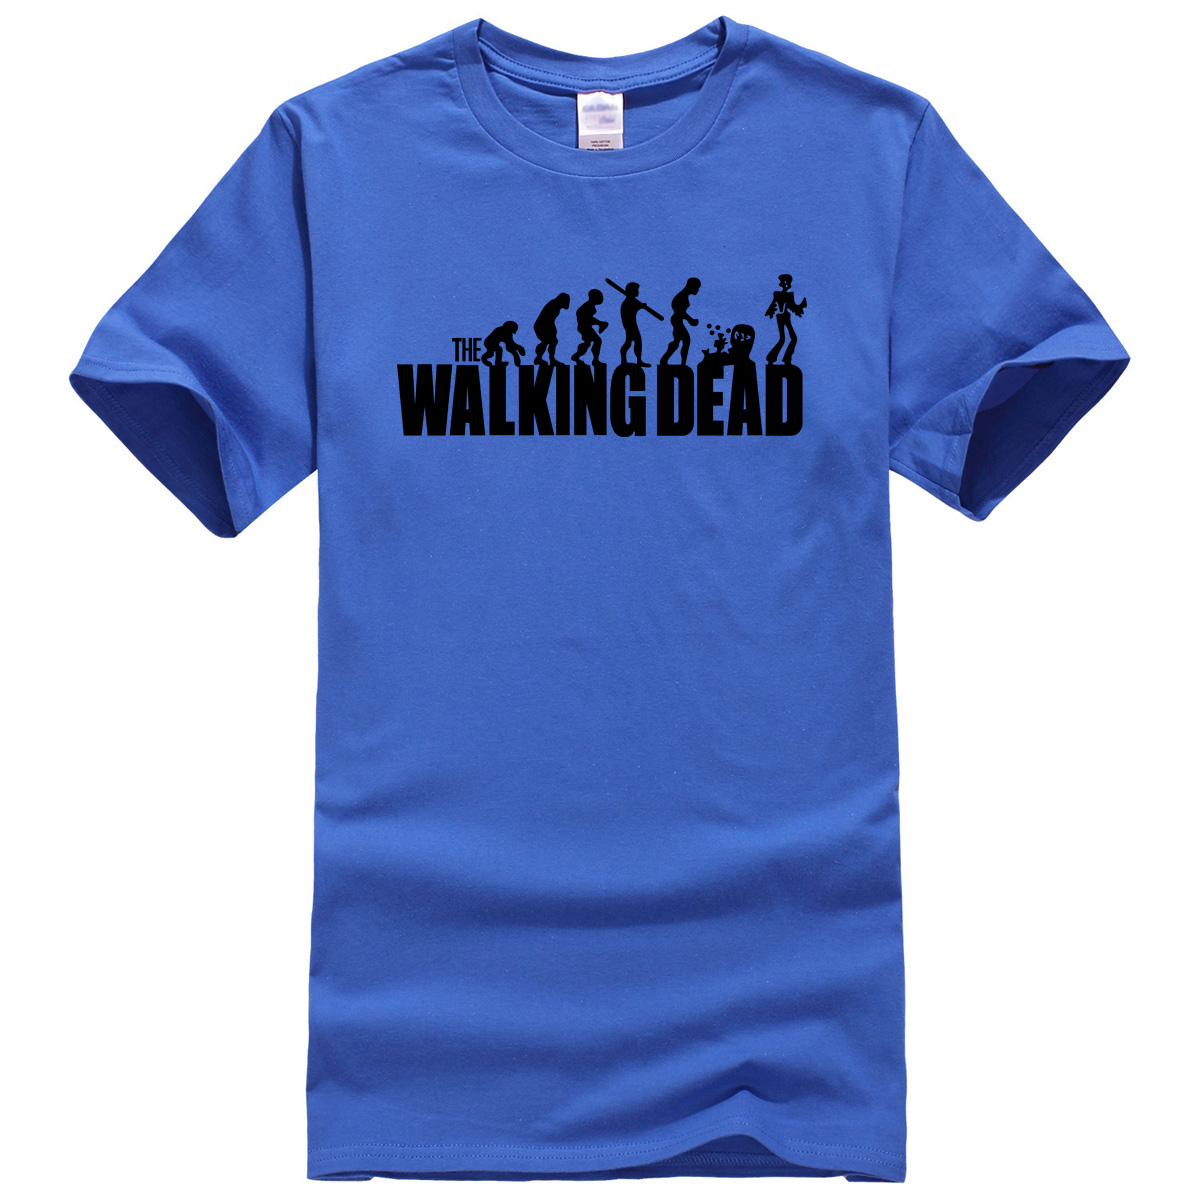 Mens New Shirts Designer | 2017 New The Walking Dead T Shirt Men S New Summer Print Men T